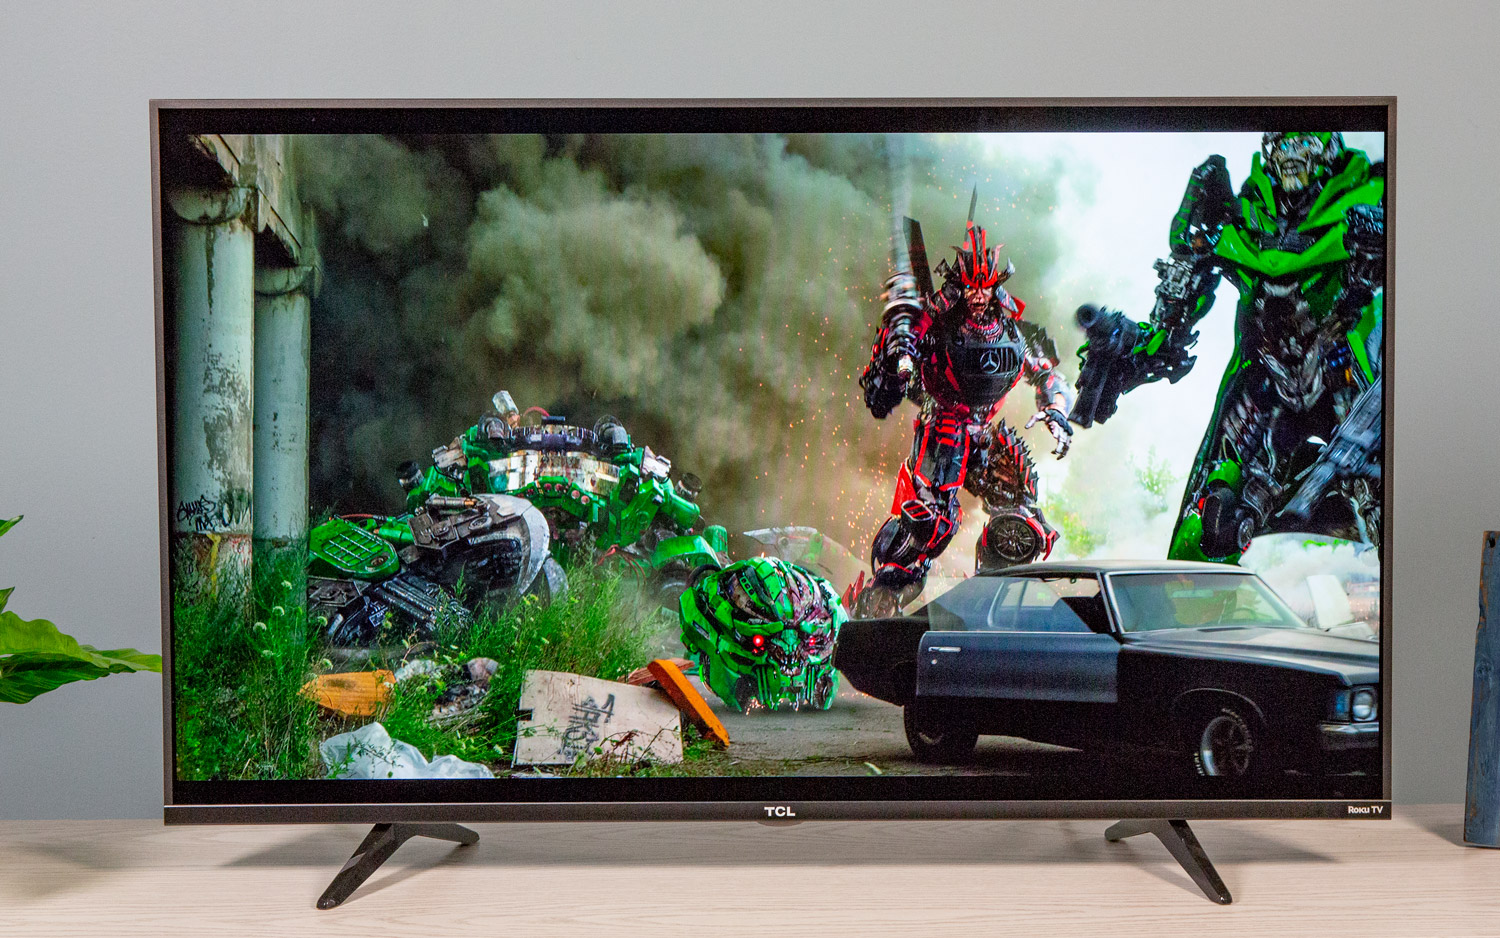 Best 4K Gaming TVs 2019 | Tom's Guide